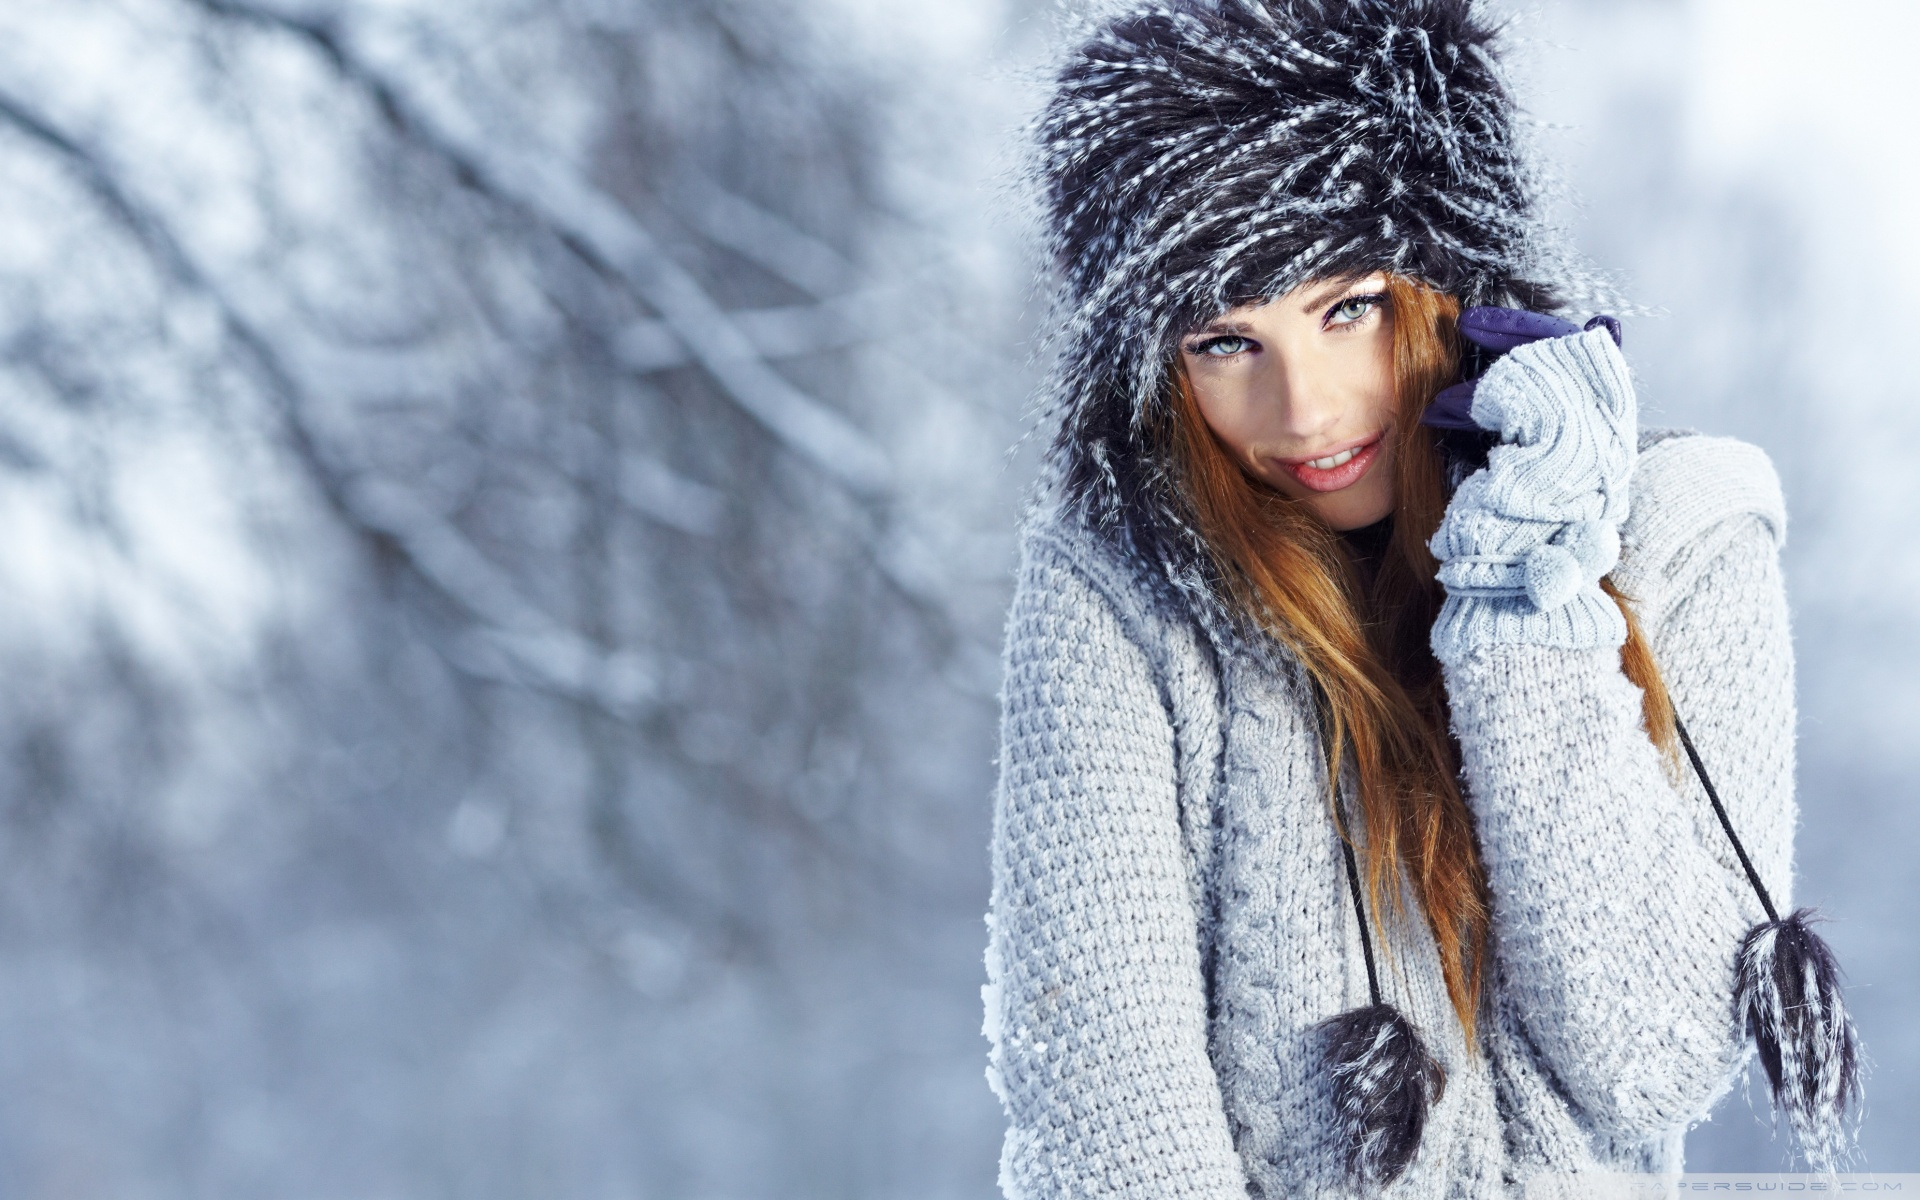 winter_girl_portrait-wallpaper-1920x1200